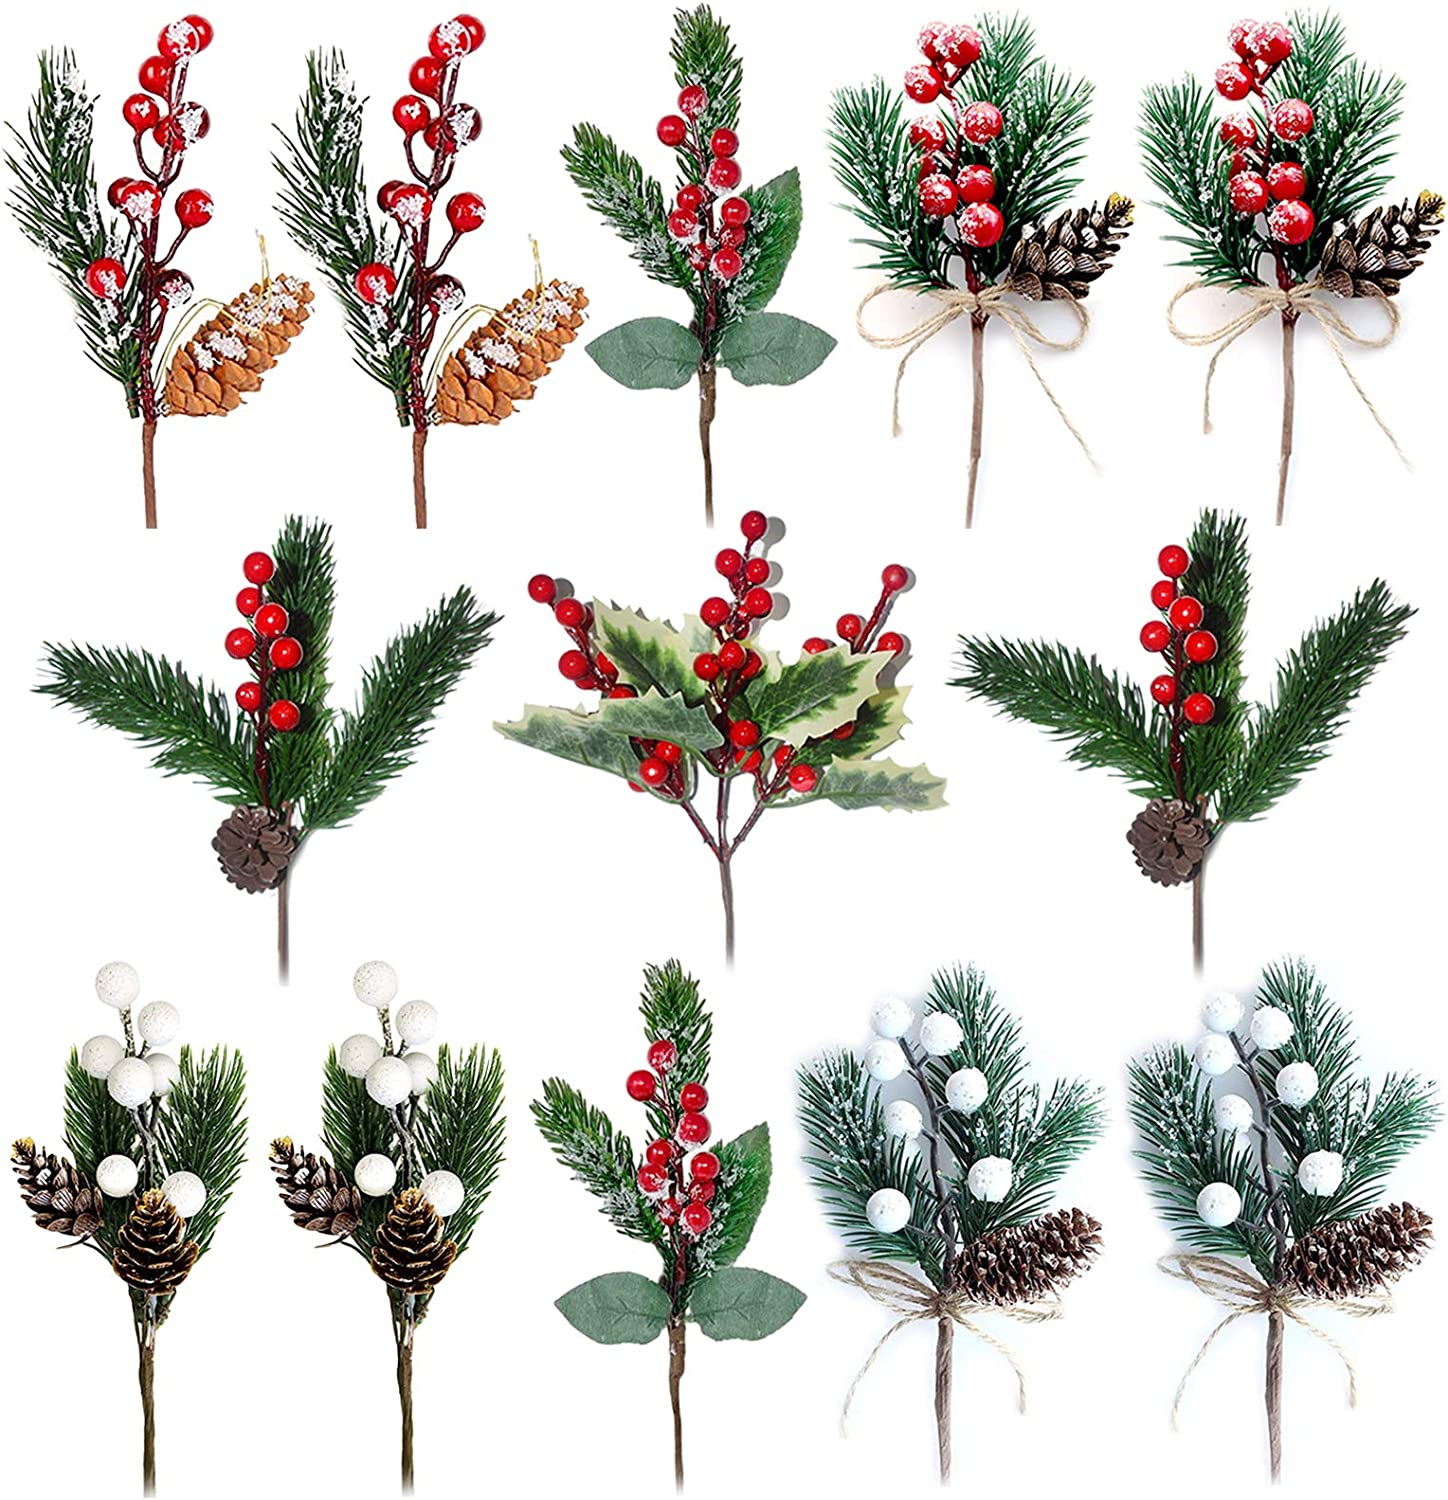 VVIP Artificial Christmas Pine Picks,13PCS Artificial Pine Branches with Red Berries/White Berries/Holly Leaves, Berry Picks for Christmas Decor DIY Crafts Gift Wrapping Flower Wreaths Floral Picks